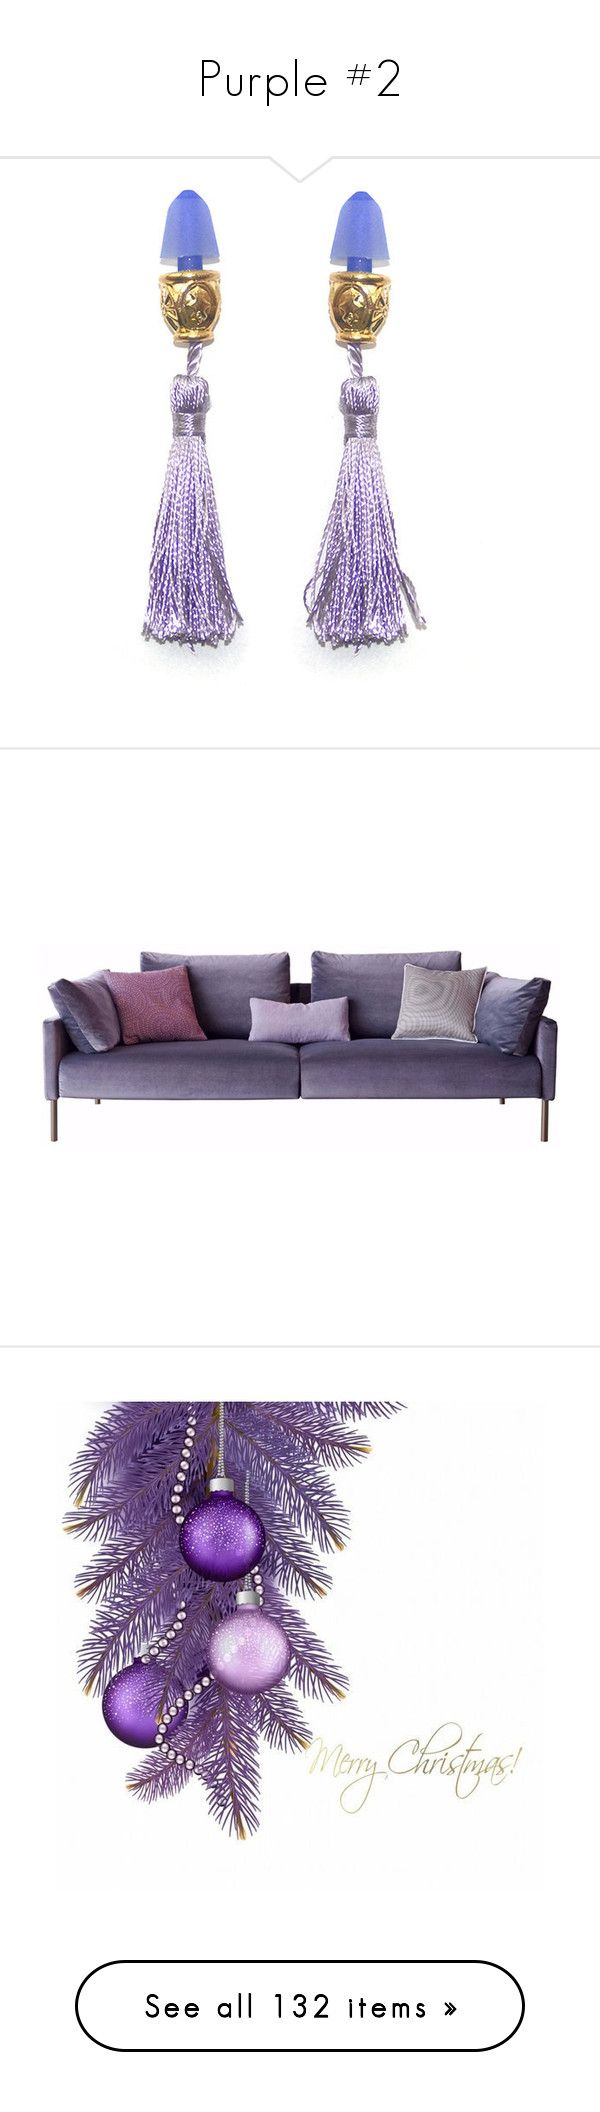 """Purple #2"" by littlegingegal ❤ liked on Polyvore featuring home, furniture, sofas, upholstery fabric sofa, fabric couch, fabric furniture, 3 seater sofa, upholstery couch, home decor and christmas"